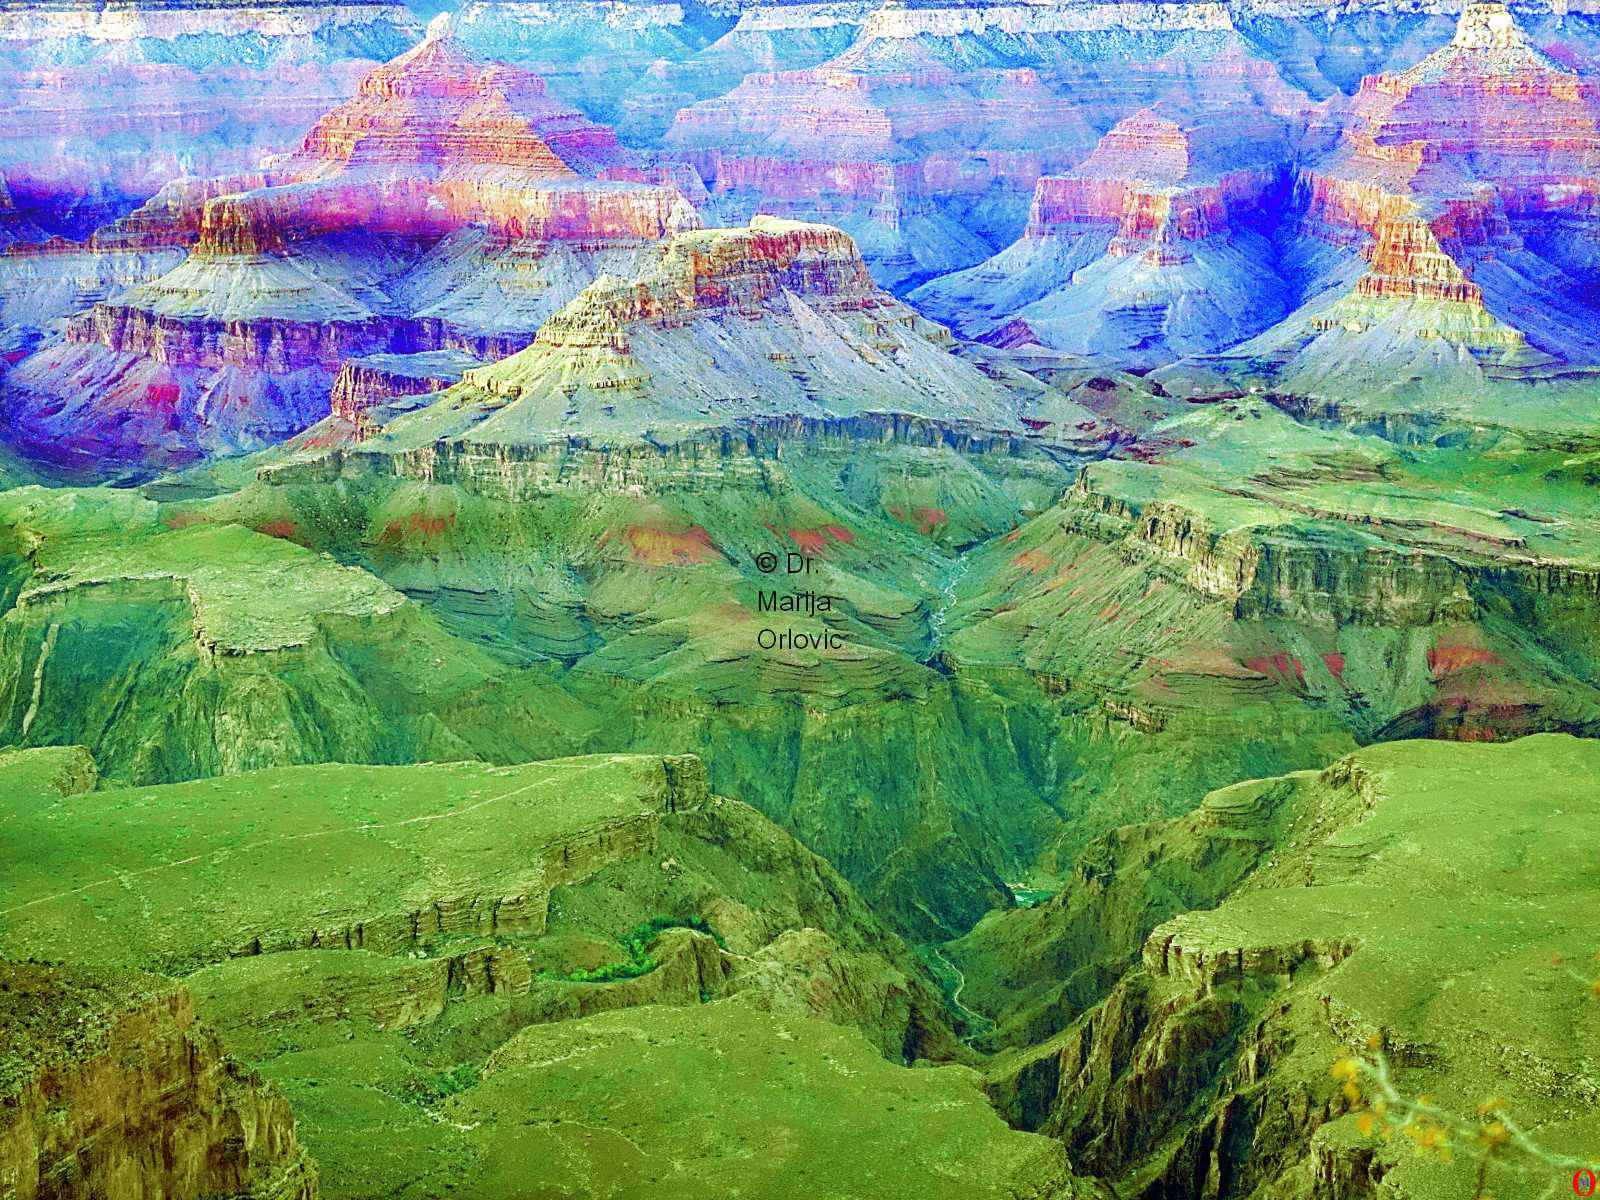 metamorphosys of grand canyon 01 artwork by Marija Orlovic - art listed for sale on Artplode